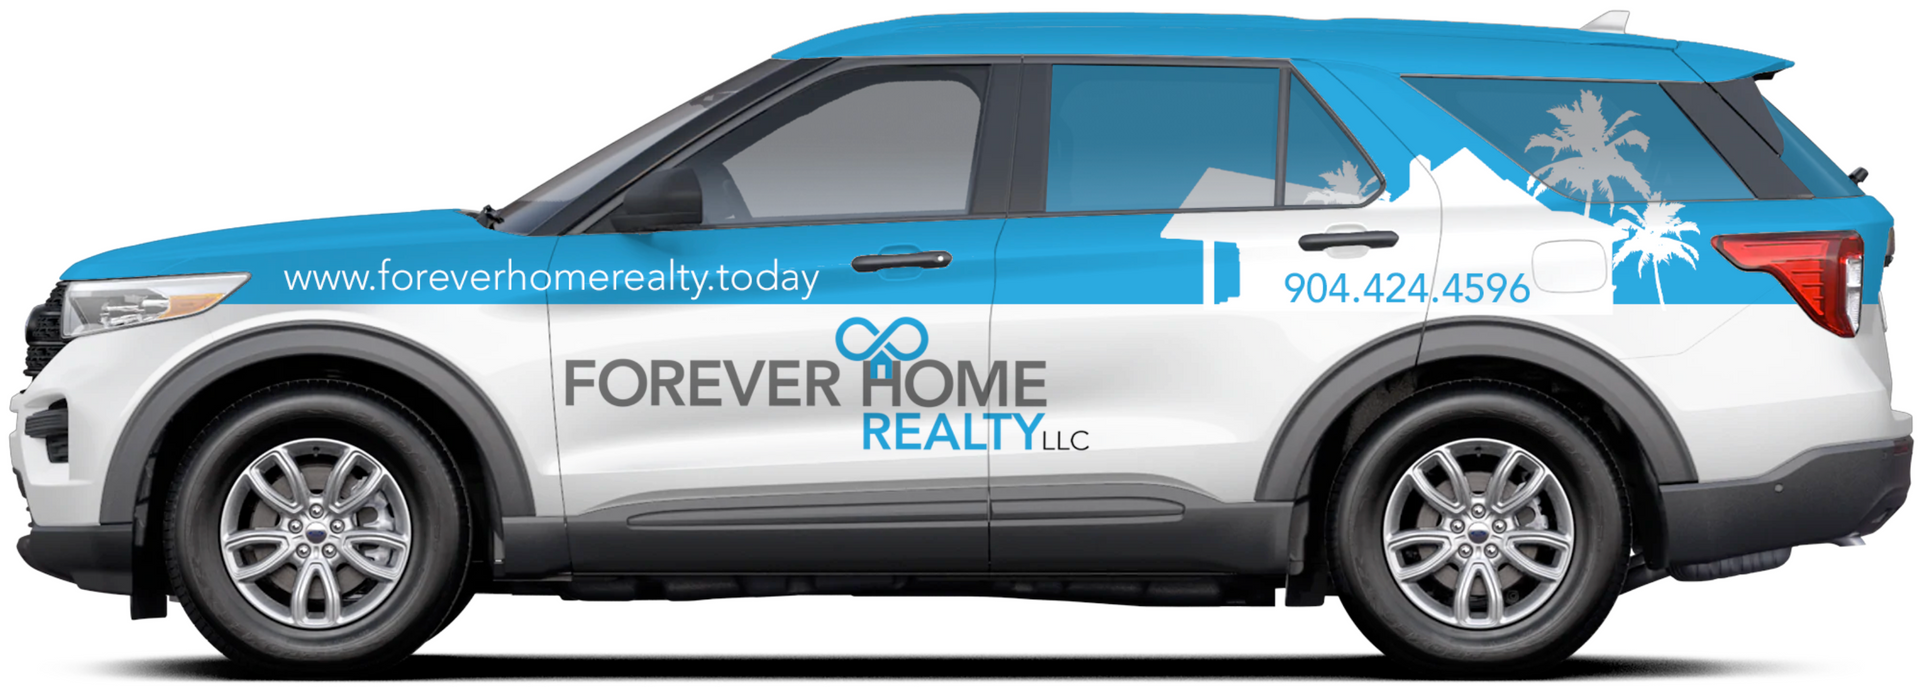 custom designed vehicle wrap for Forever Home Realty